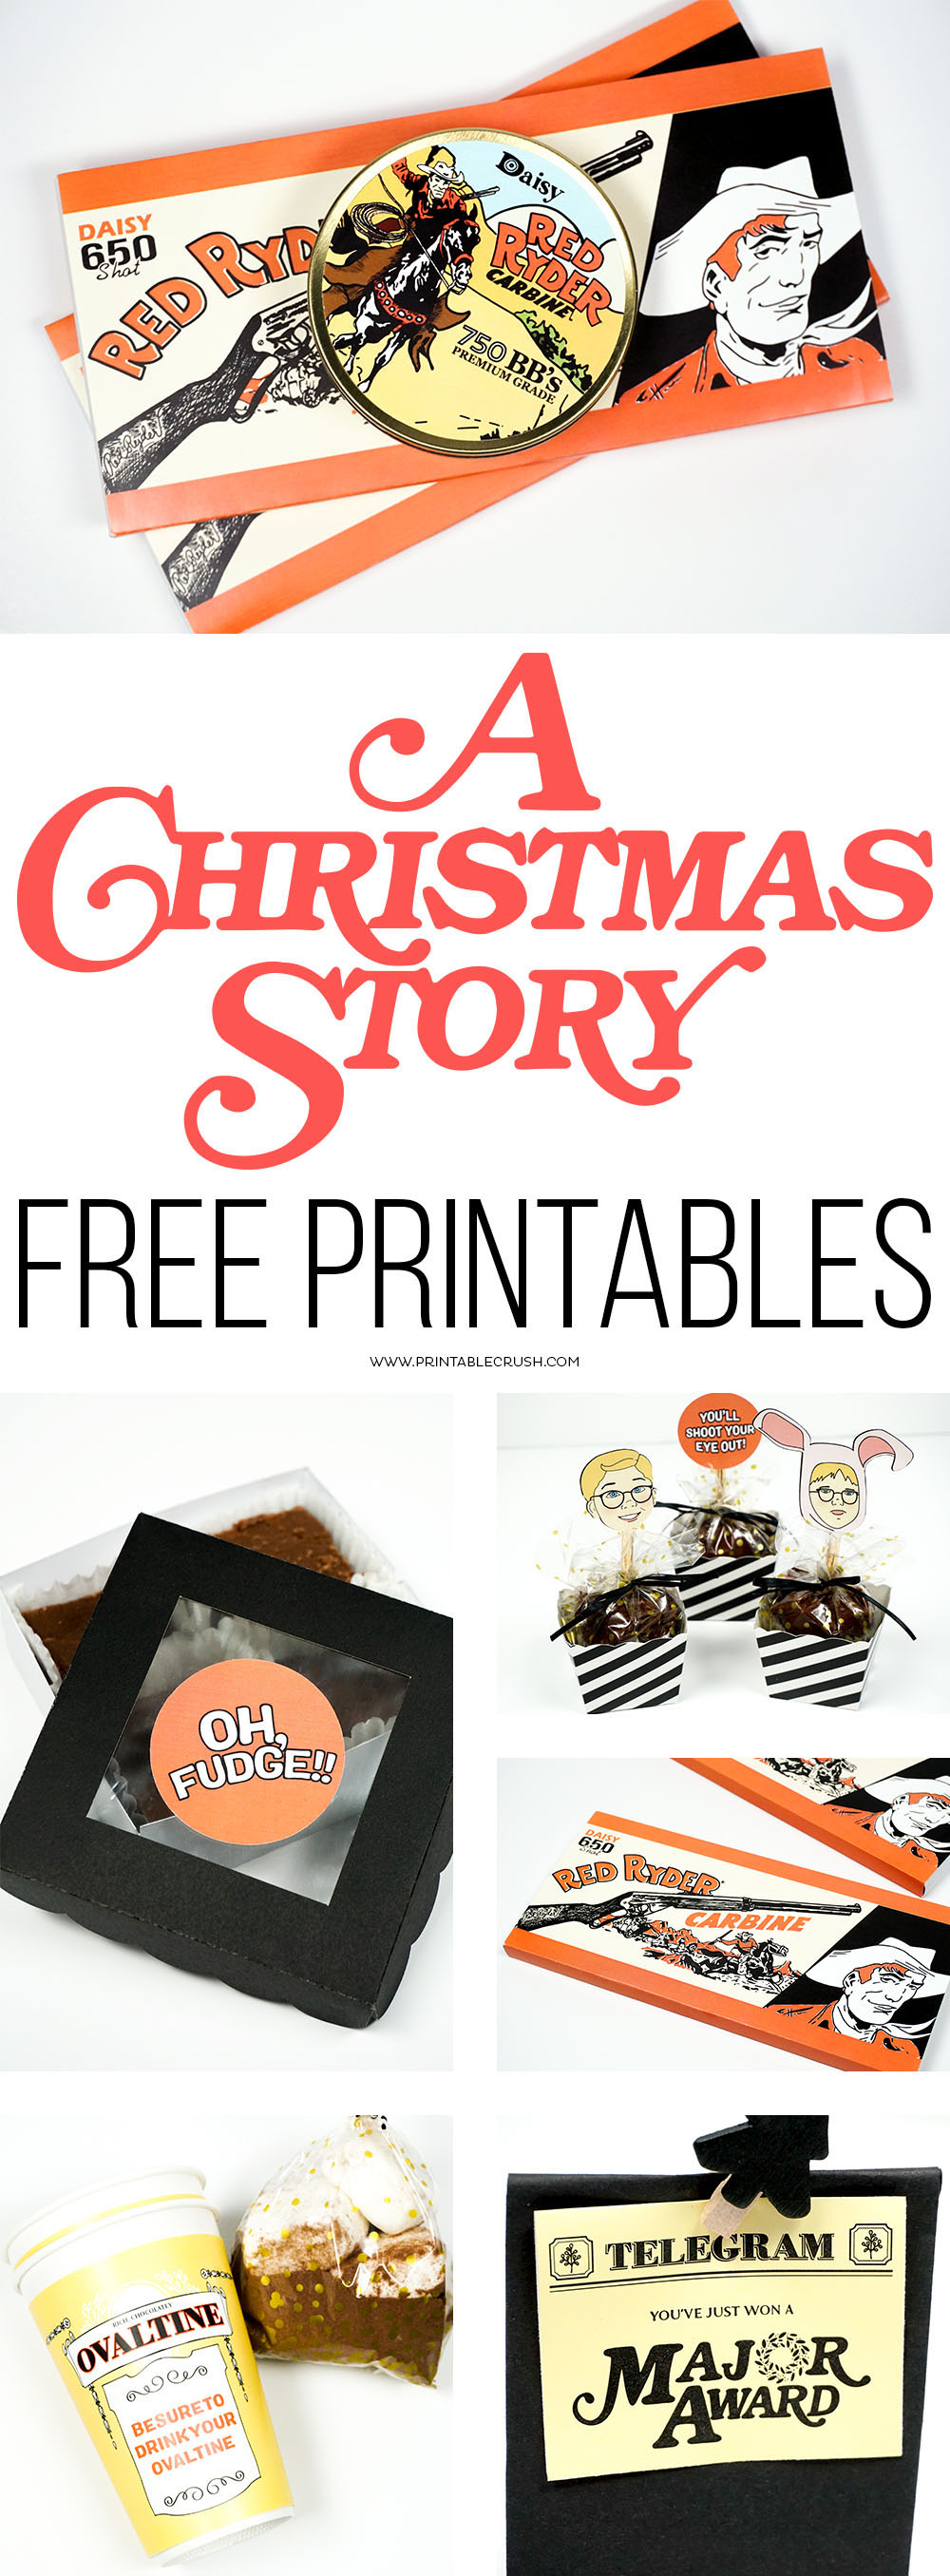 This is a picture of Free Printable Christmas Story regarding elementary student